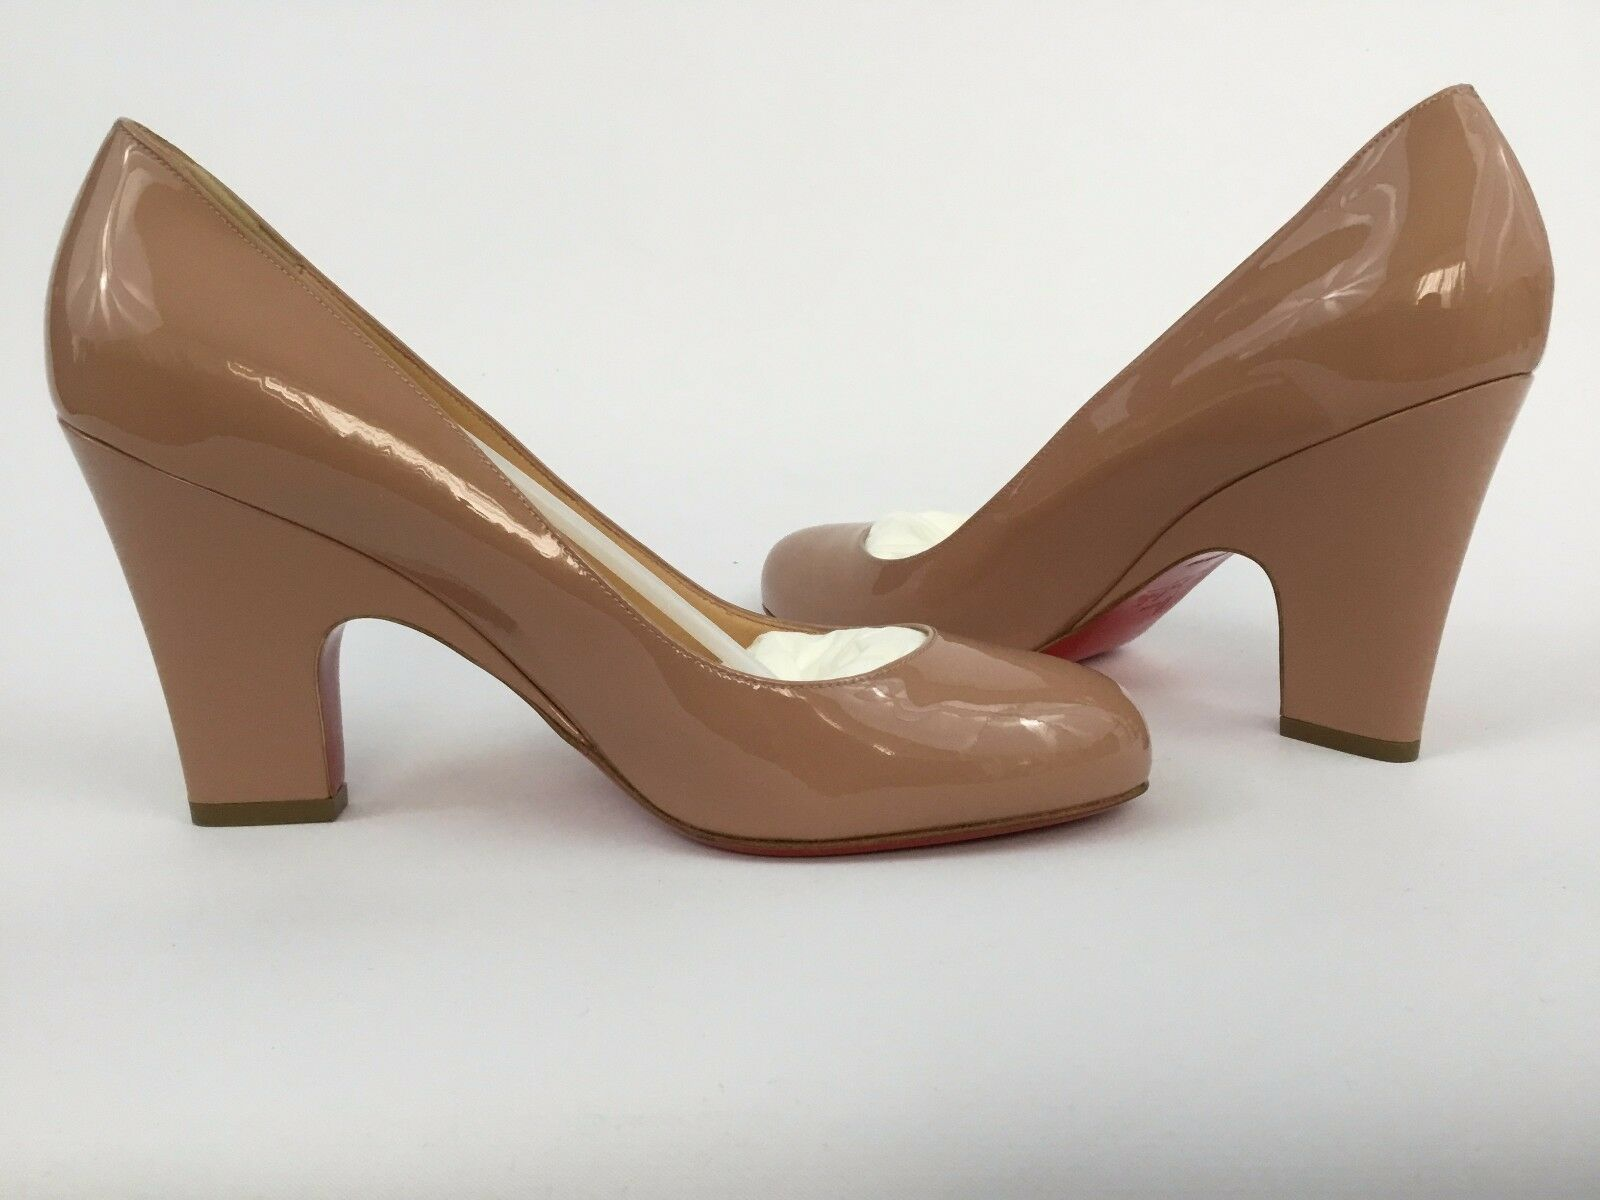 Christian Louboutin AKDOOCH Patent Leather Nude Pumps Pumps Pumps Heels 40.5 514b93